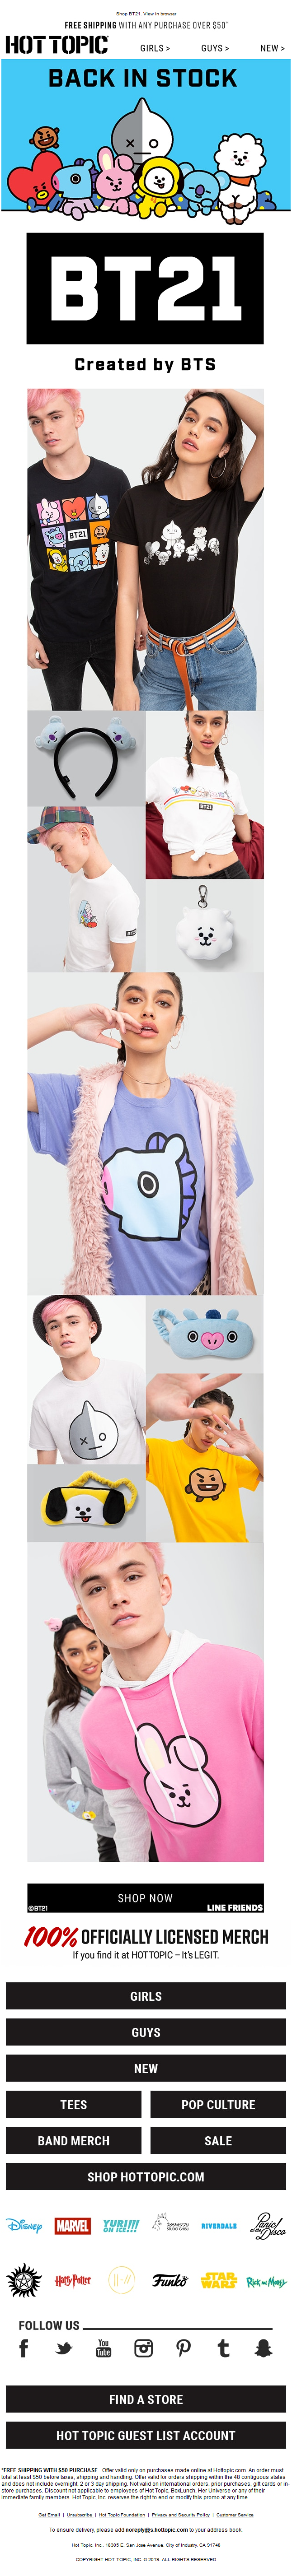 Drop everything: BT21 is back in stock.